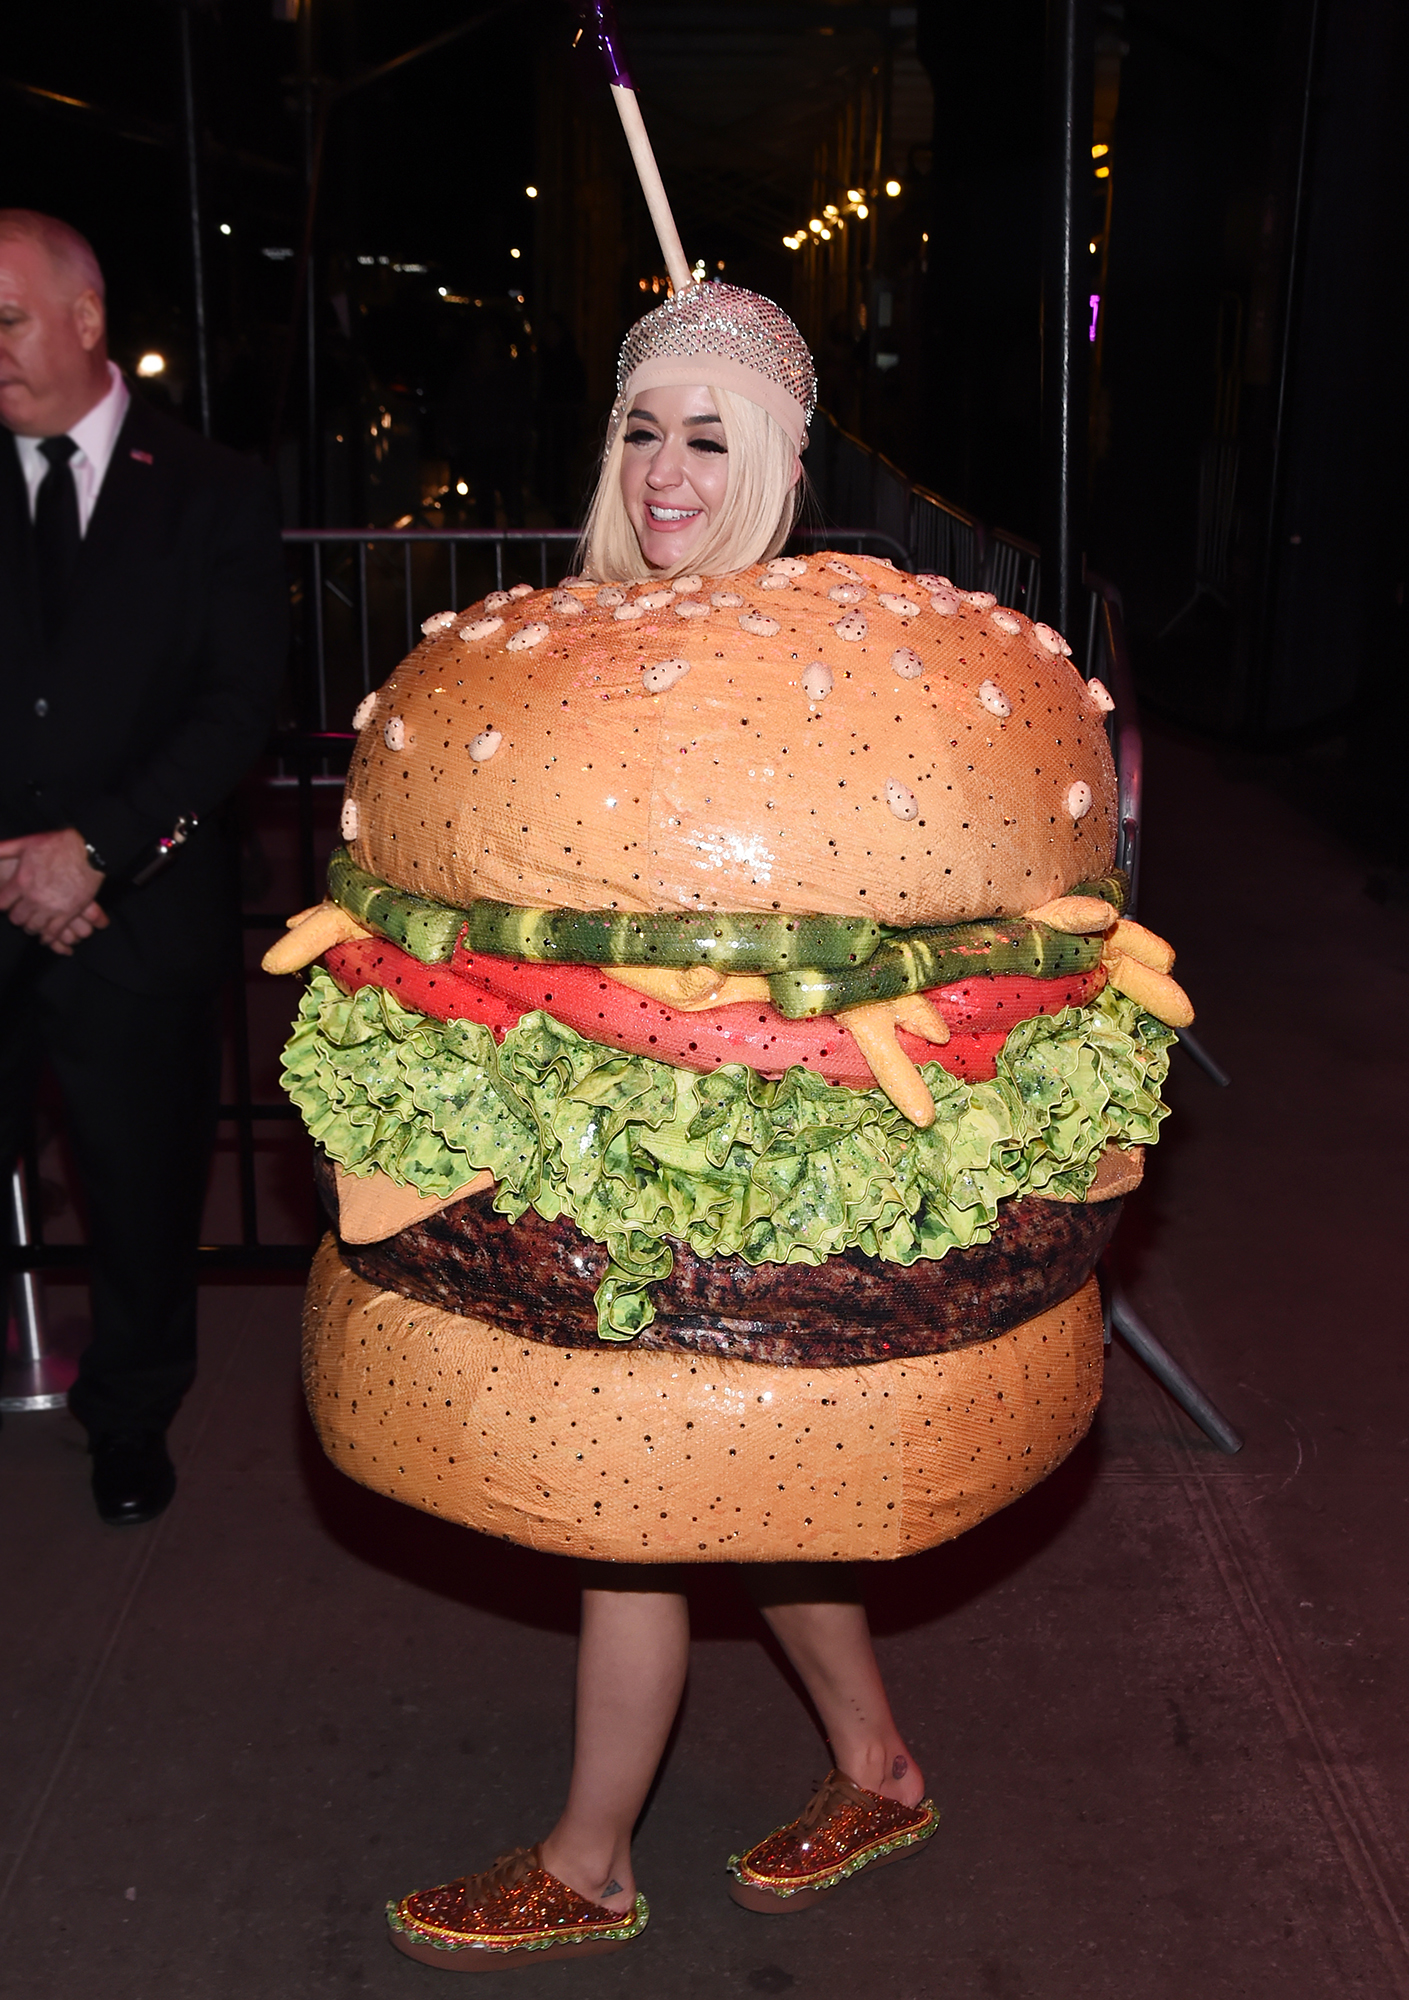 Katy Perry Dressed as Food - The songstress walked the red carpet in an outfit that made her look like a classy lighting fixture, but once inside she changed into a detailed hamburger costume. The number was created by Moschino designer Jeremy Scott, who wore his own hamburger-esque outfit to match his muse's.